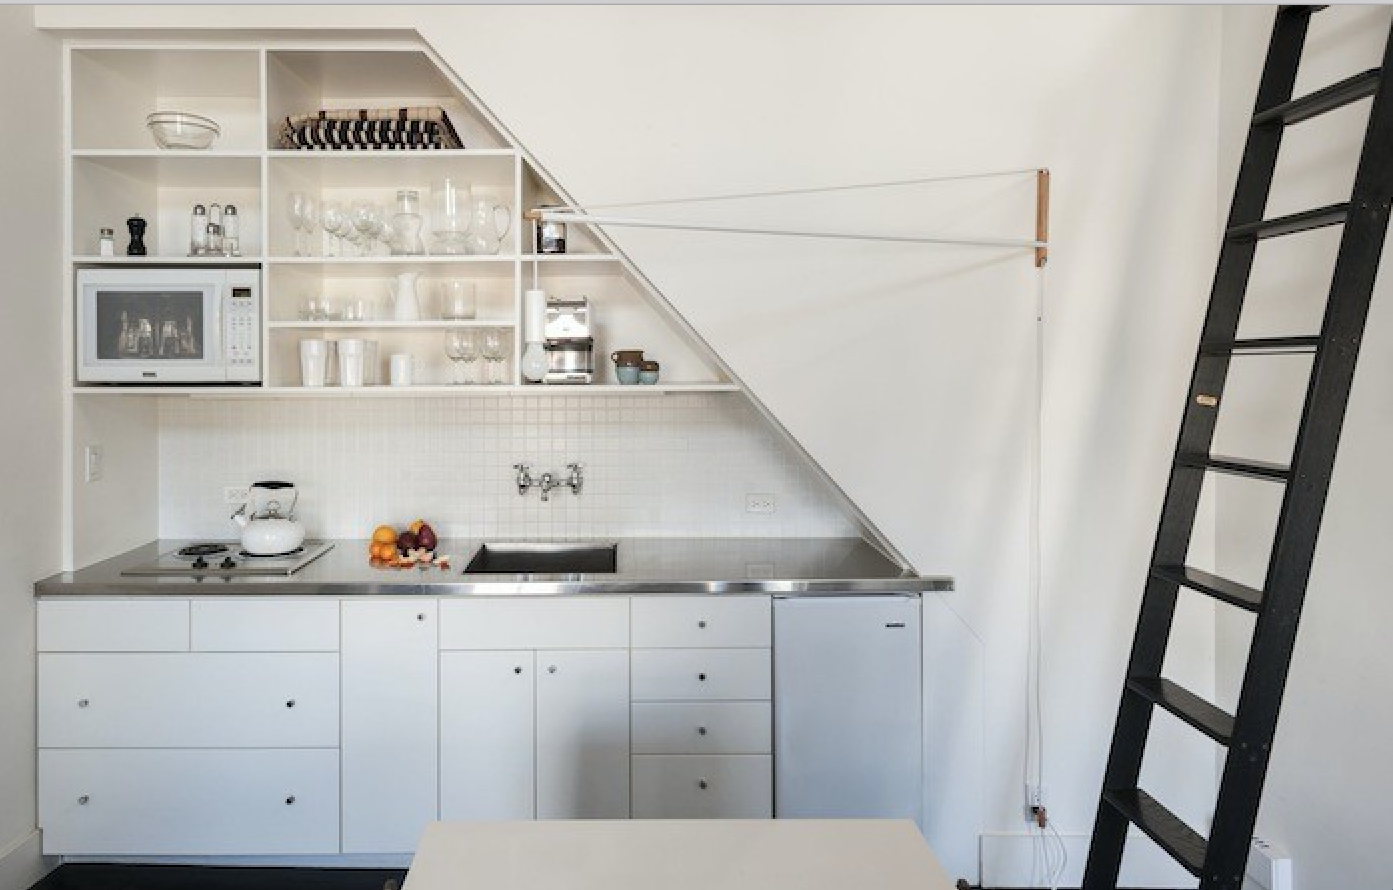 Merveilleux Compact Kitchen Stainless Countertop Matthew Williams Remodelista